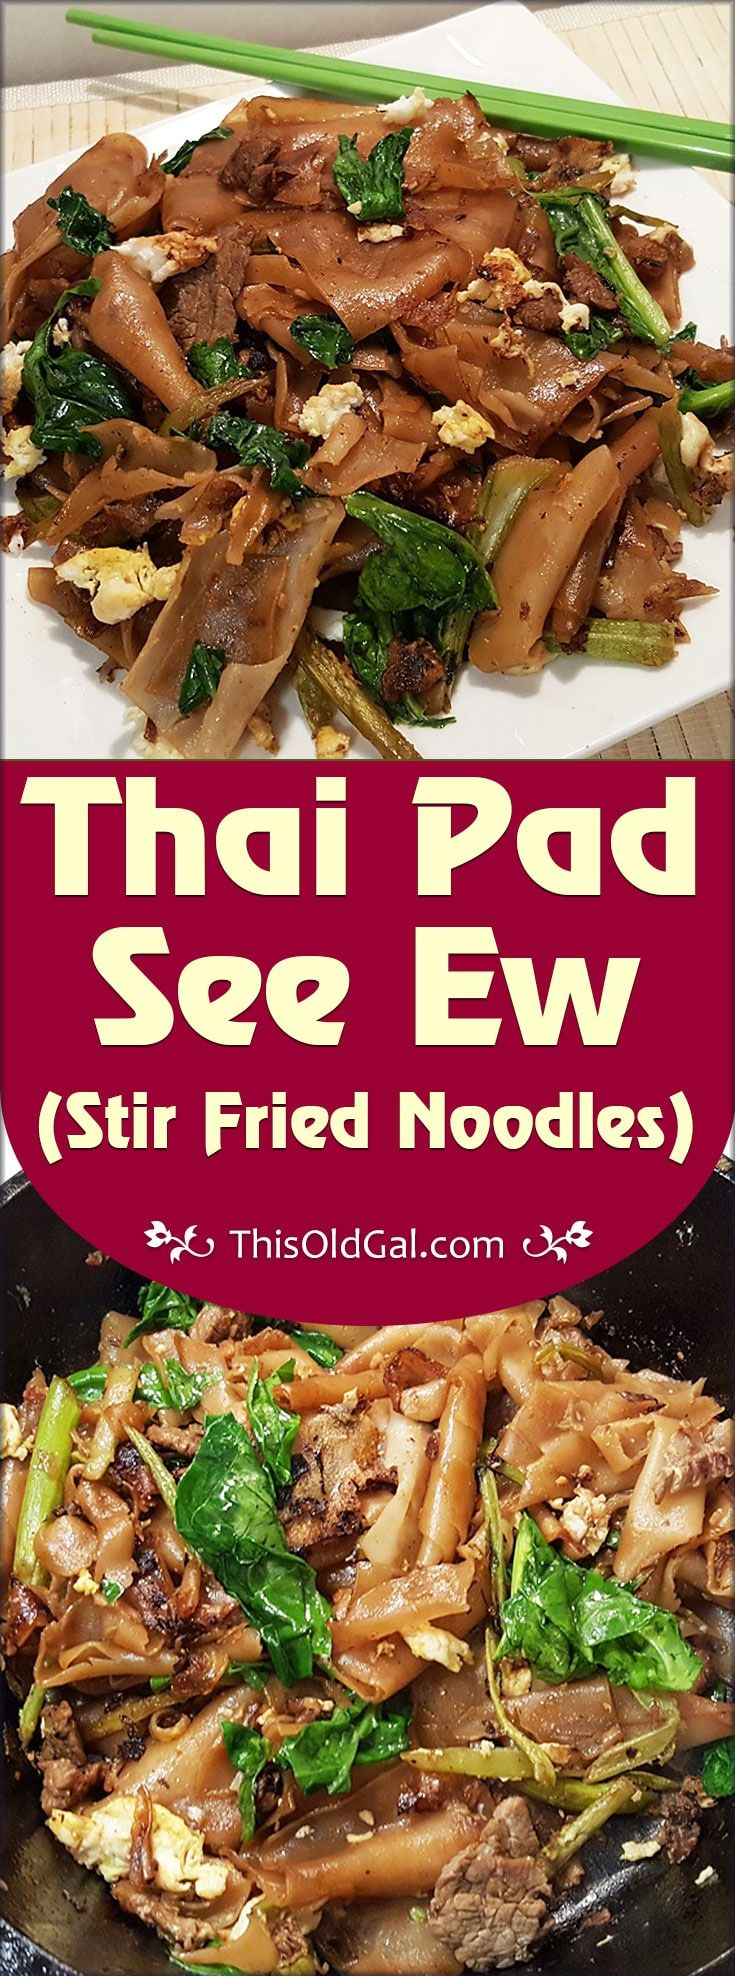 "Thai Pad See Ew (Stir Fried Noodles) is often referred to as ""Street"" food in Thailand, as it is found in many of the open food markets. via @thisoldgalcooks"